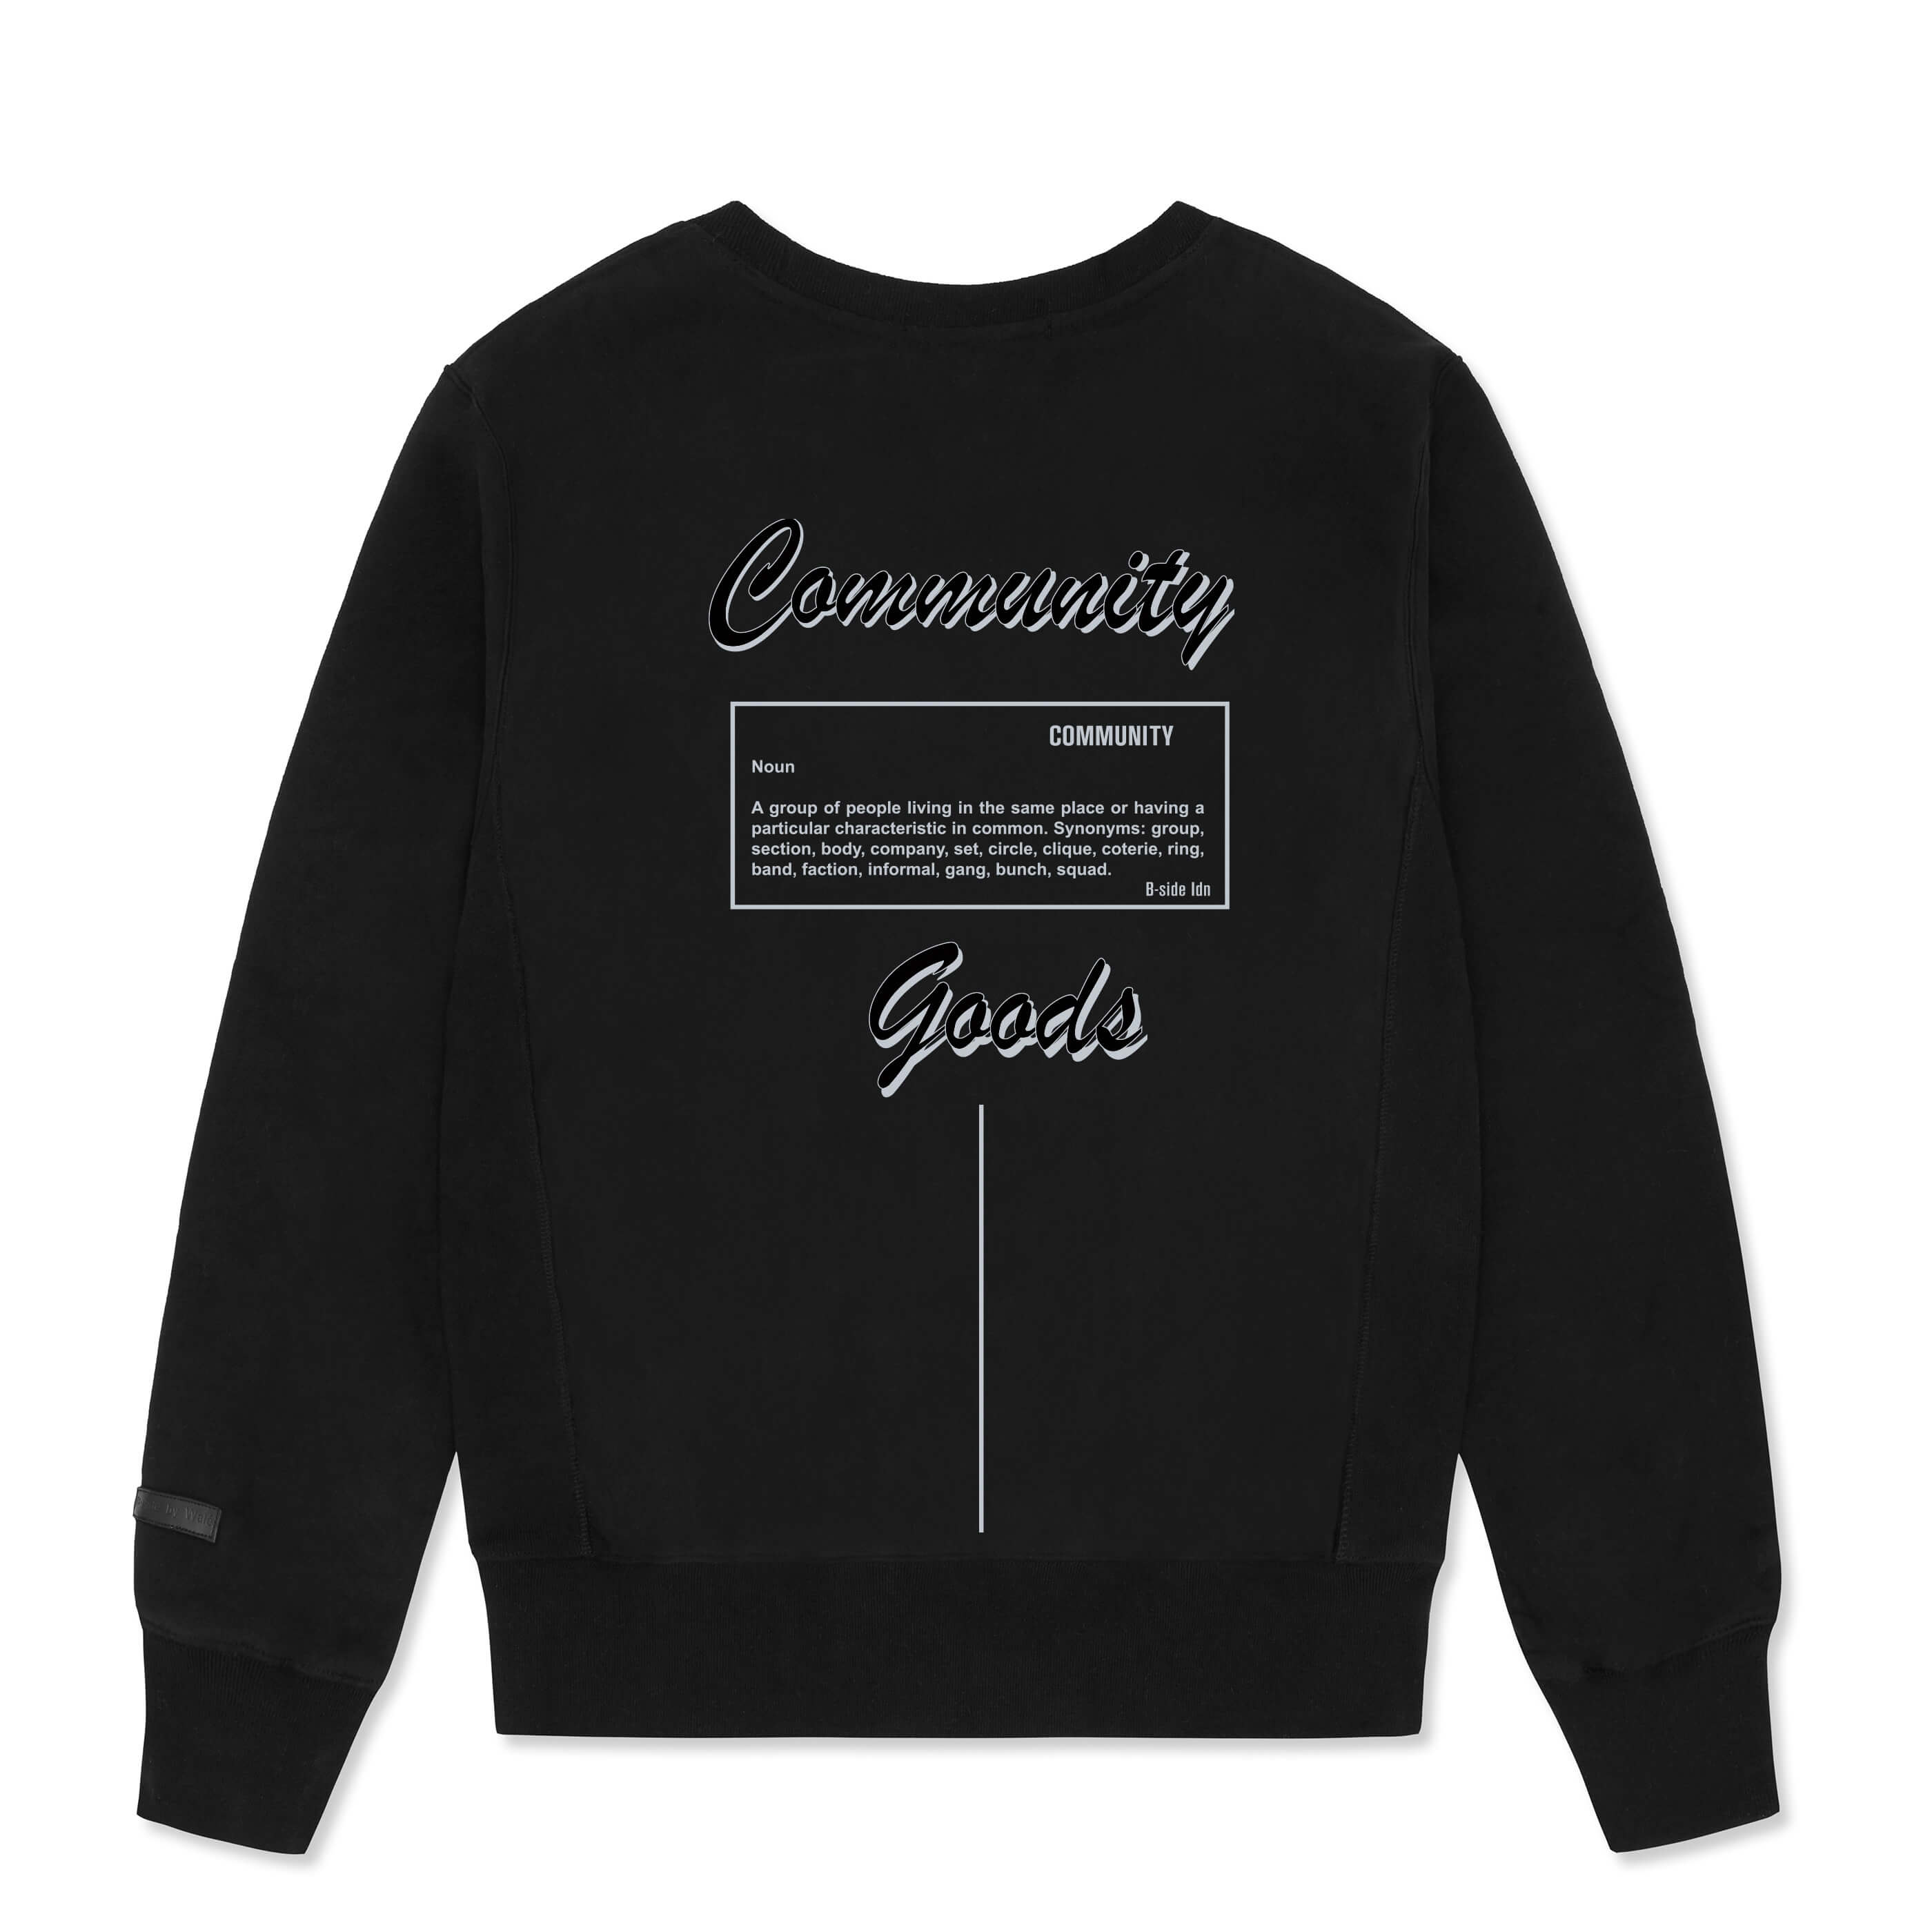 WOMEN'S CREWNECK COMMUNITY HEAVY SWEAT | B-sidebywale